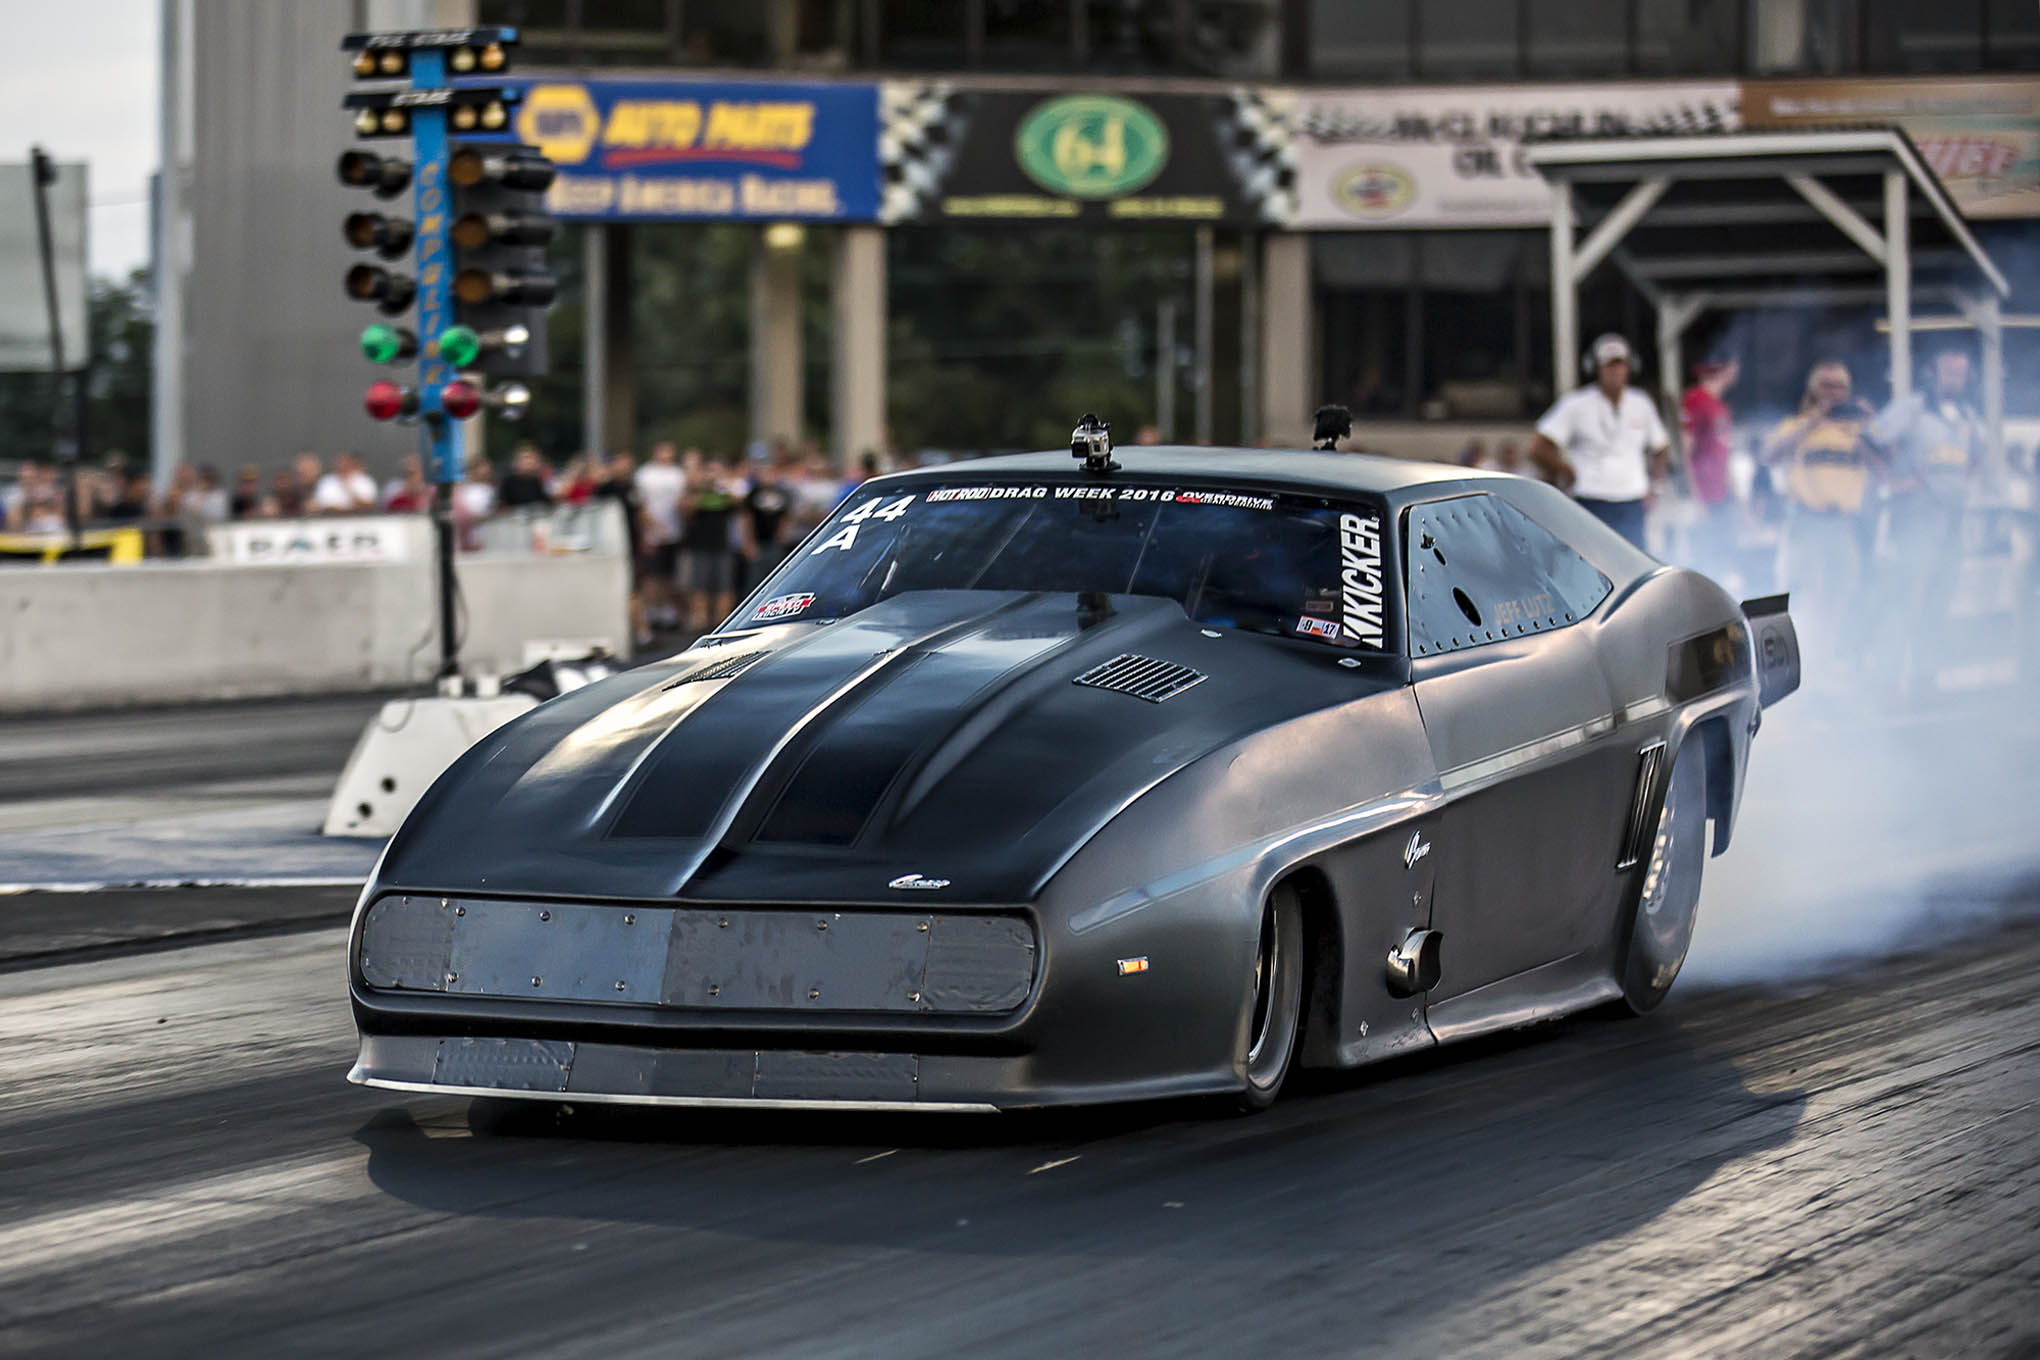 Jeff Lutz Dominated The 2016 Drag Week With His Wicked Mad Max Pro ...